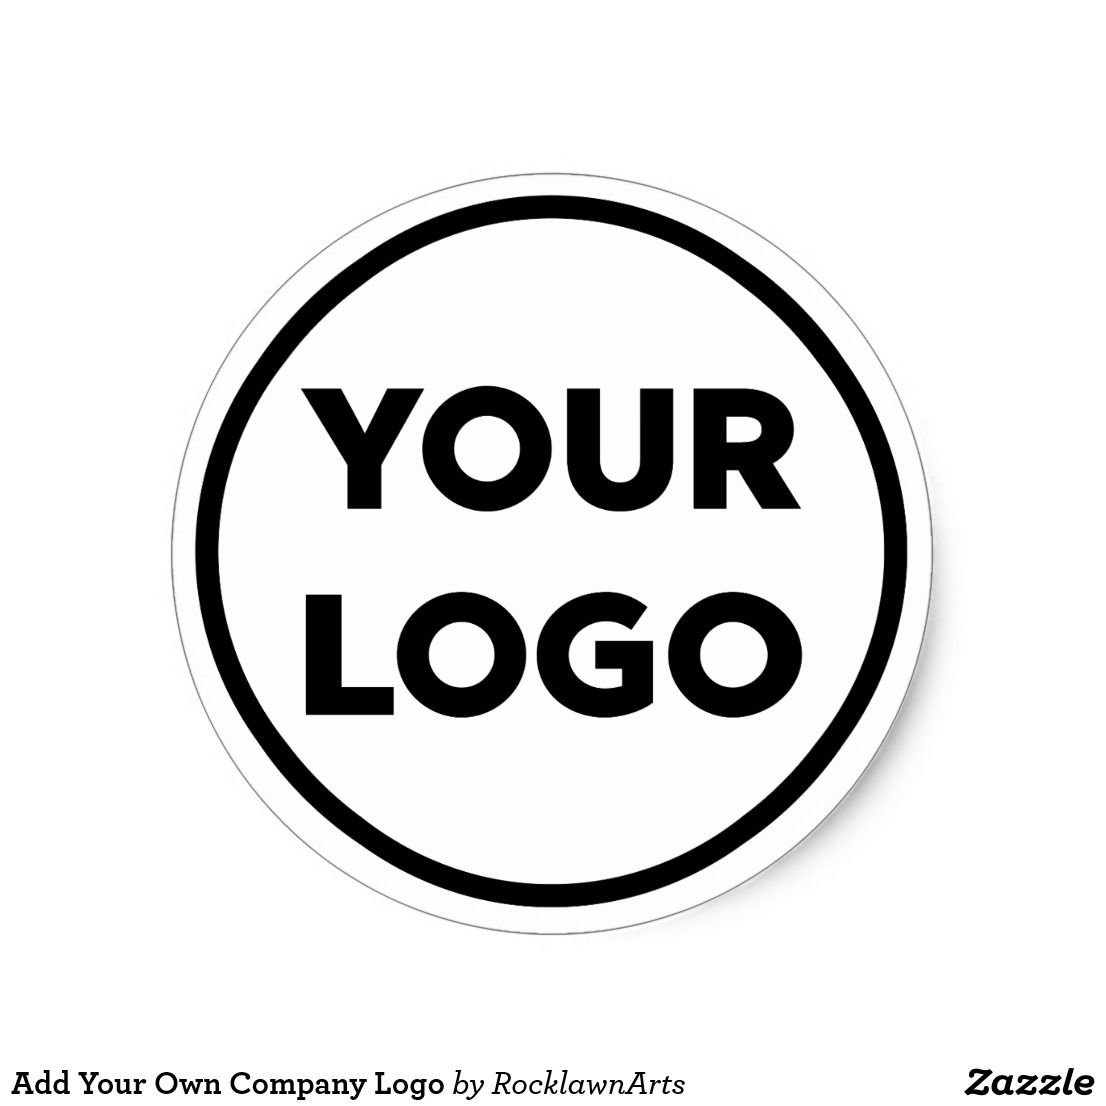 Add your own company logo classic round stickers they make great branded envelope and package seals click to customize it at rocklawn arts on zazzle